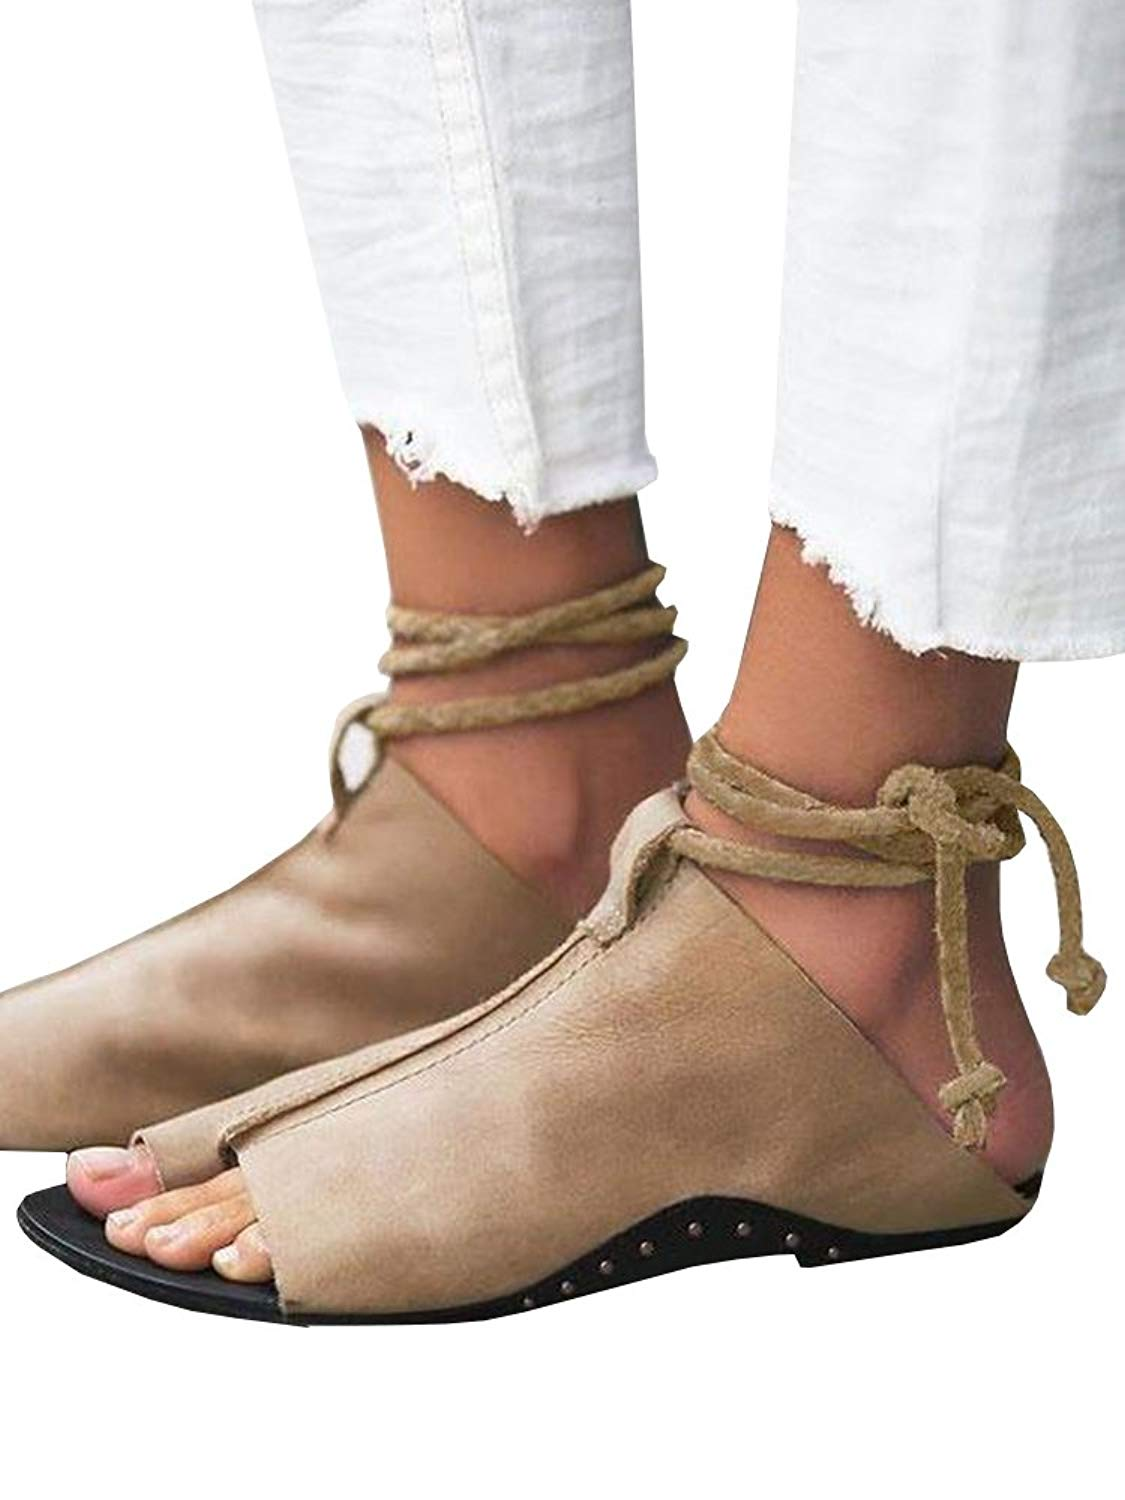 23b6c1a9edf Get Quotations · Womens Roman Thong Lace up Flat Flip Flop Cut Out  Gladiator Ankle Sandals Mules